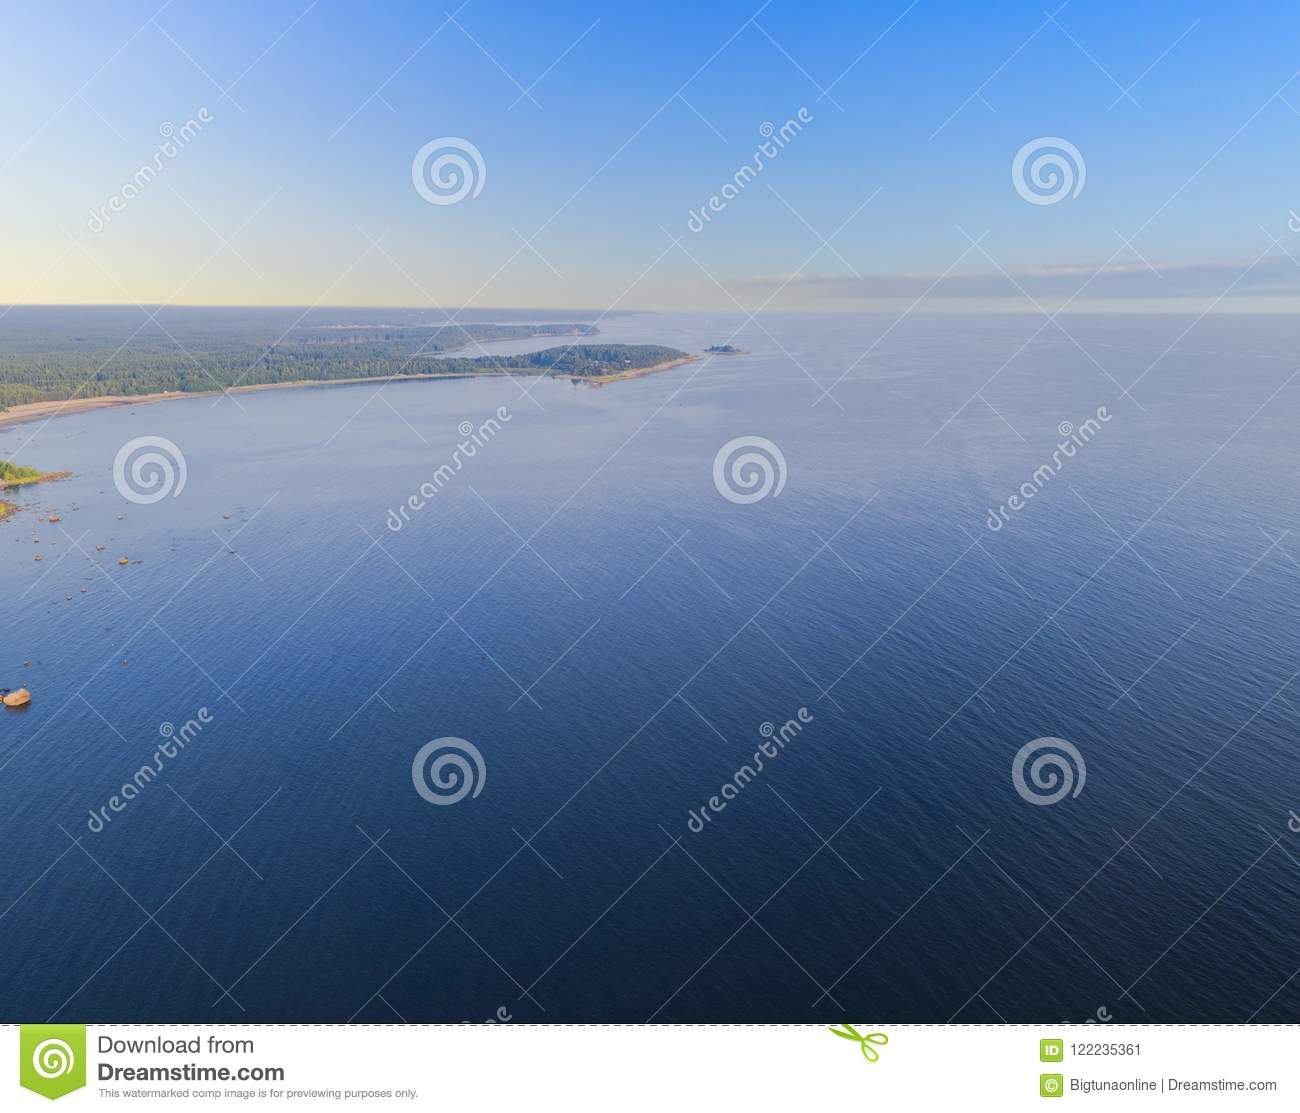 Aerial view of seashore with beach, lagoons and coral reefs. Coastline with sand and water. Tropical landscape. Aerial photography